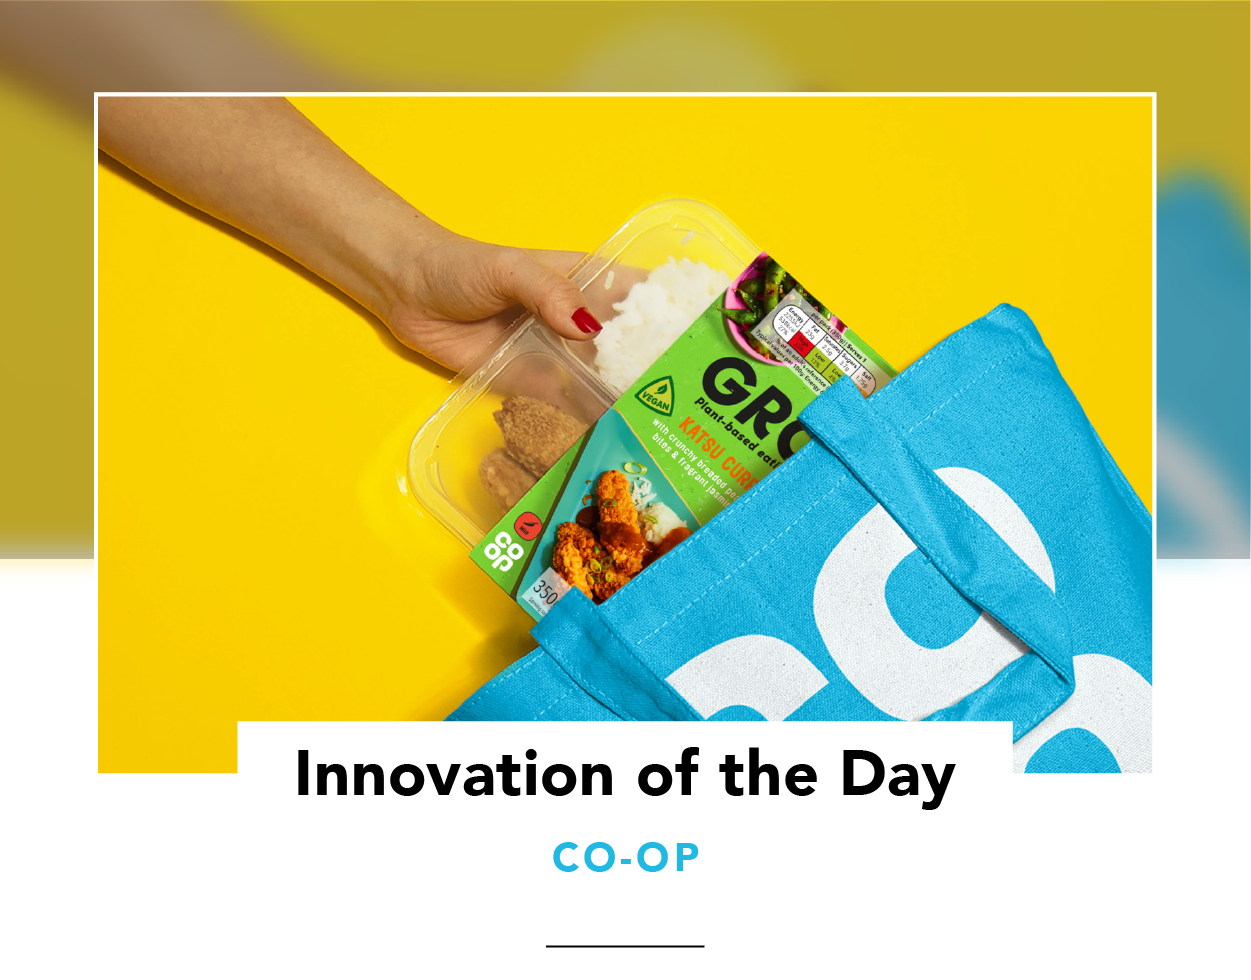 A hand pulling a GRO product out of a Co-op grocery bag